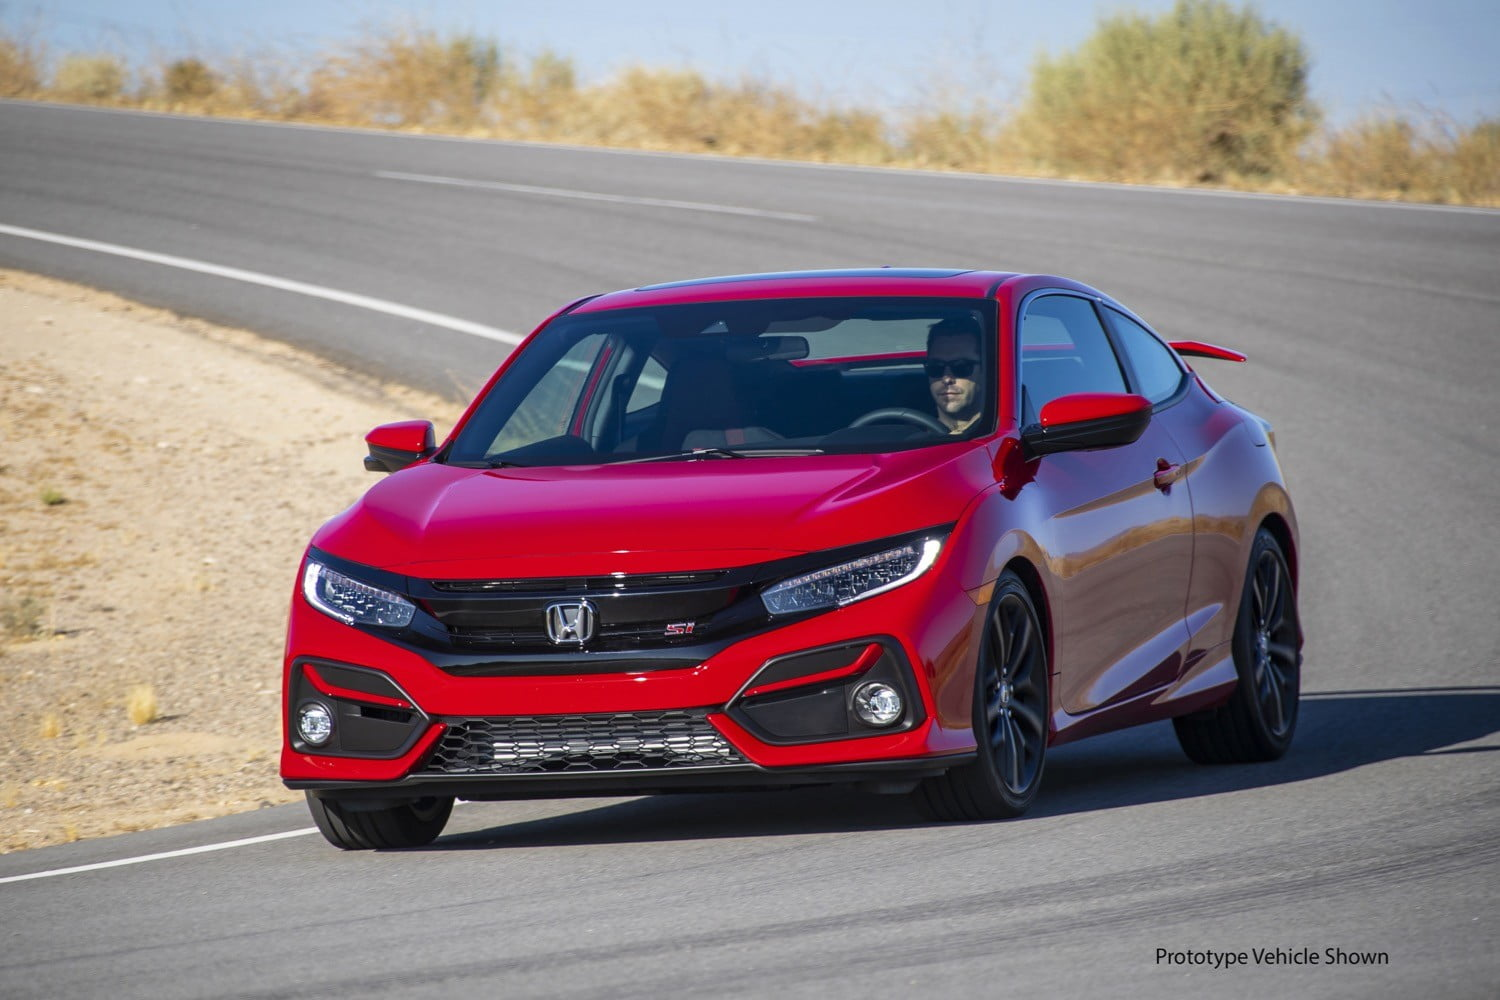 2020 Honda Civic Si coupe and sedan get artificially enhanced engine sounds